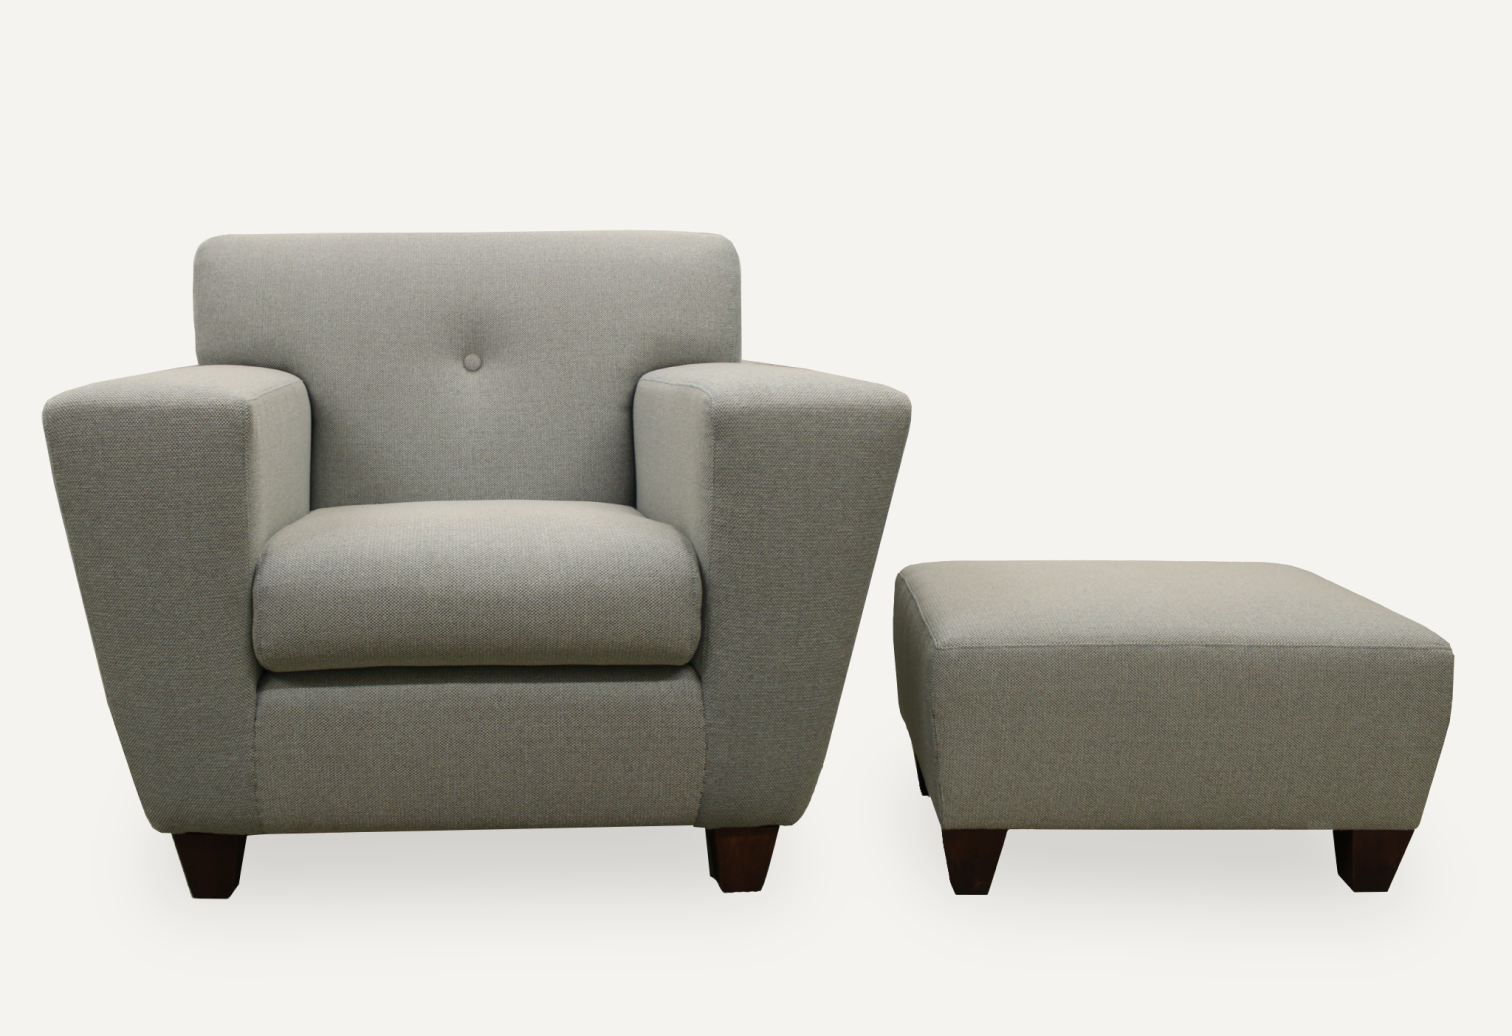 reupholstery Club Armchair and ottoman 50's